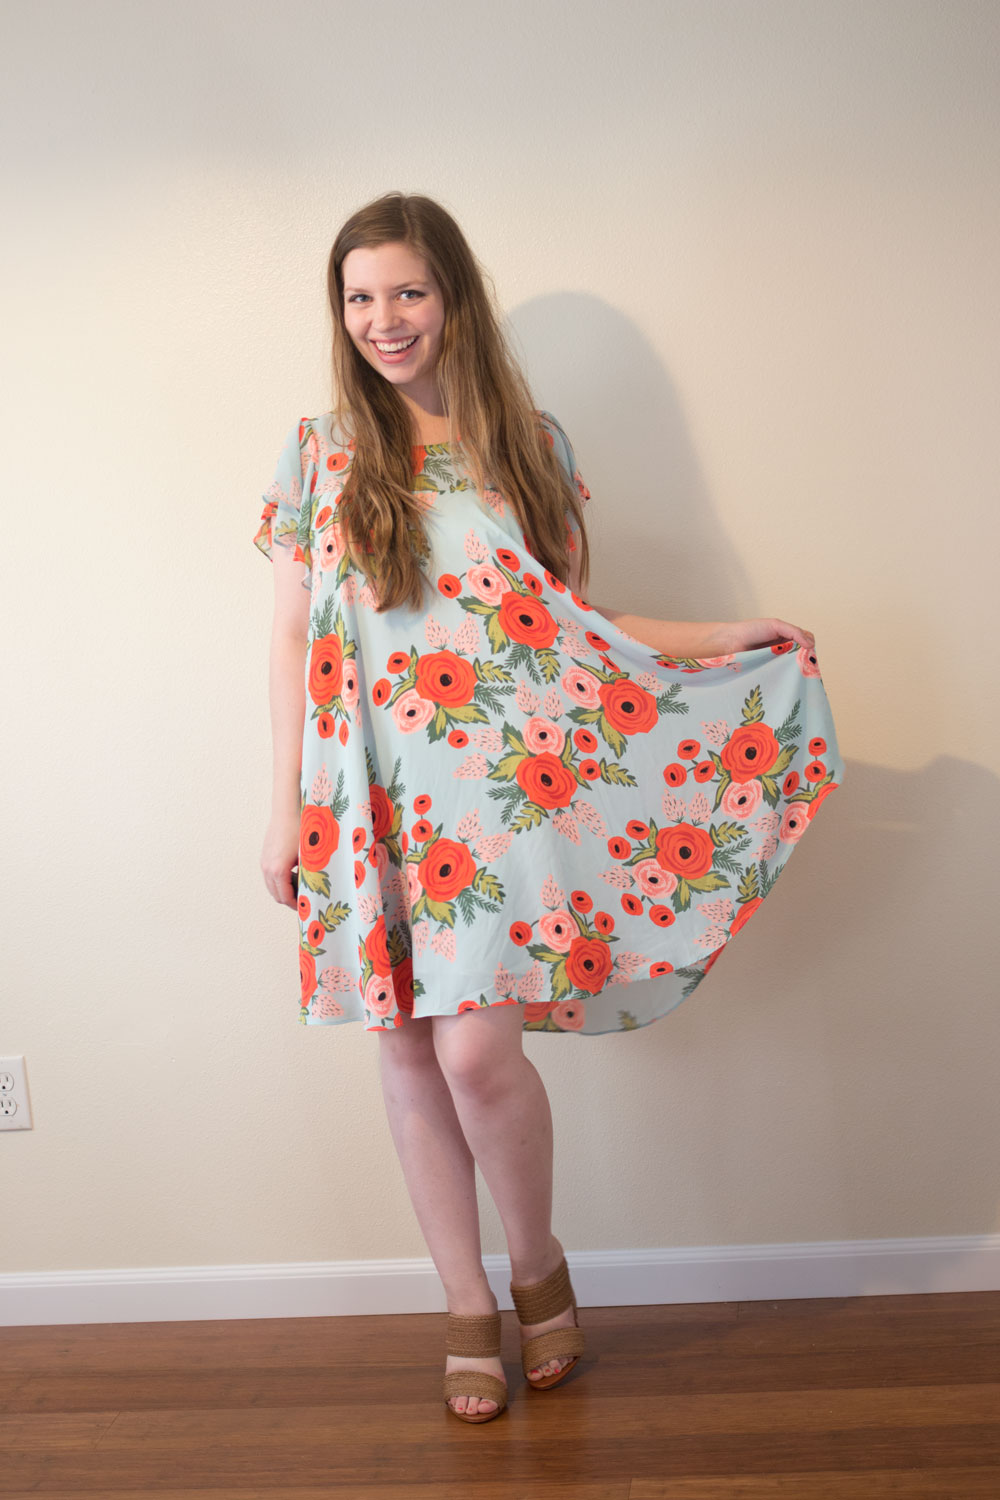 Dailylook Elite August 2015 Review & Styling:  Schutz Emyly Tranca Slip on Heels & Rifle Paper Co x Paper Crown Swing Dress // hellorigby seattle fashion blog